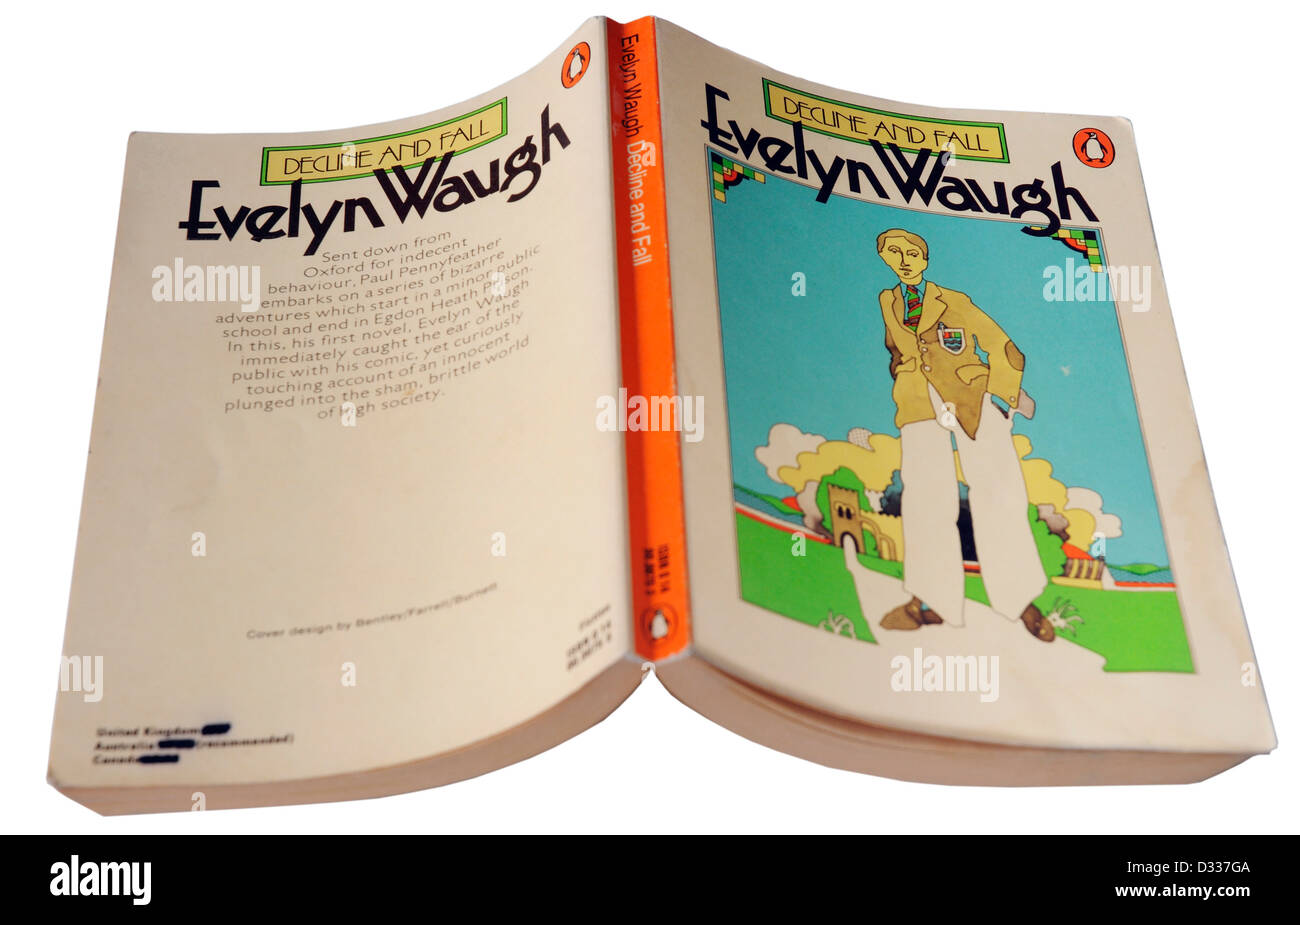 Decline and Fall by Evelyn Waugh - Stock Image